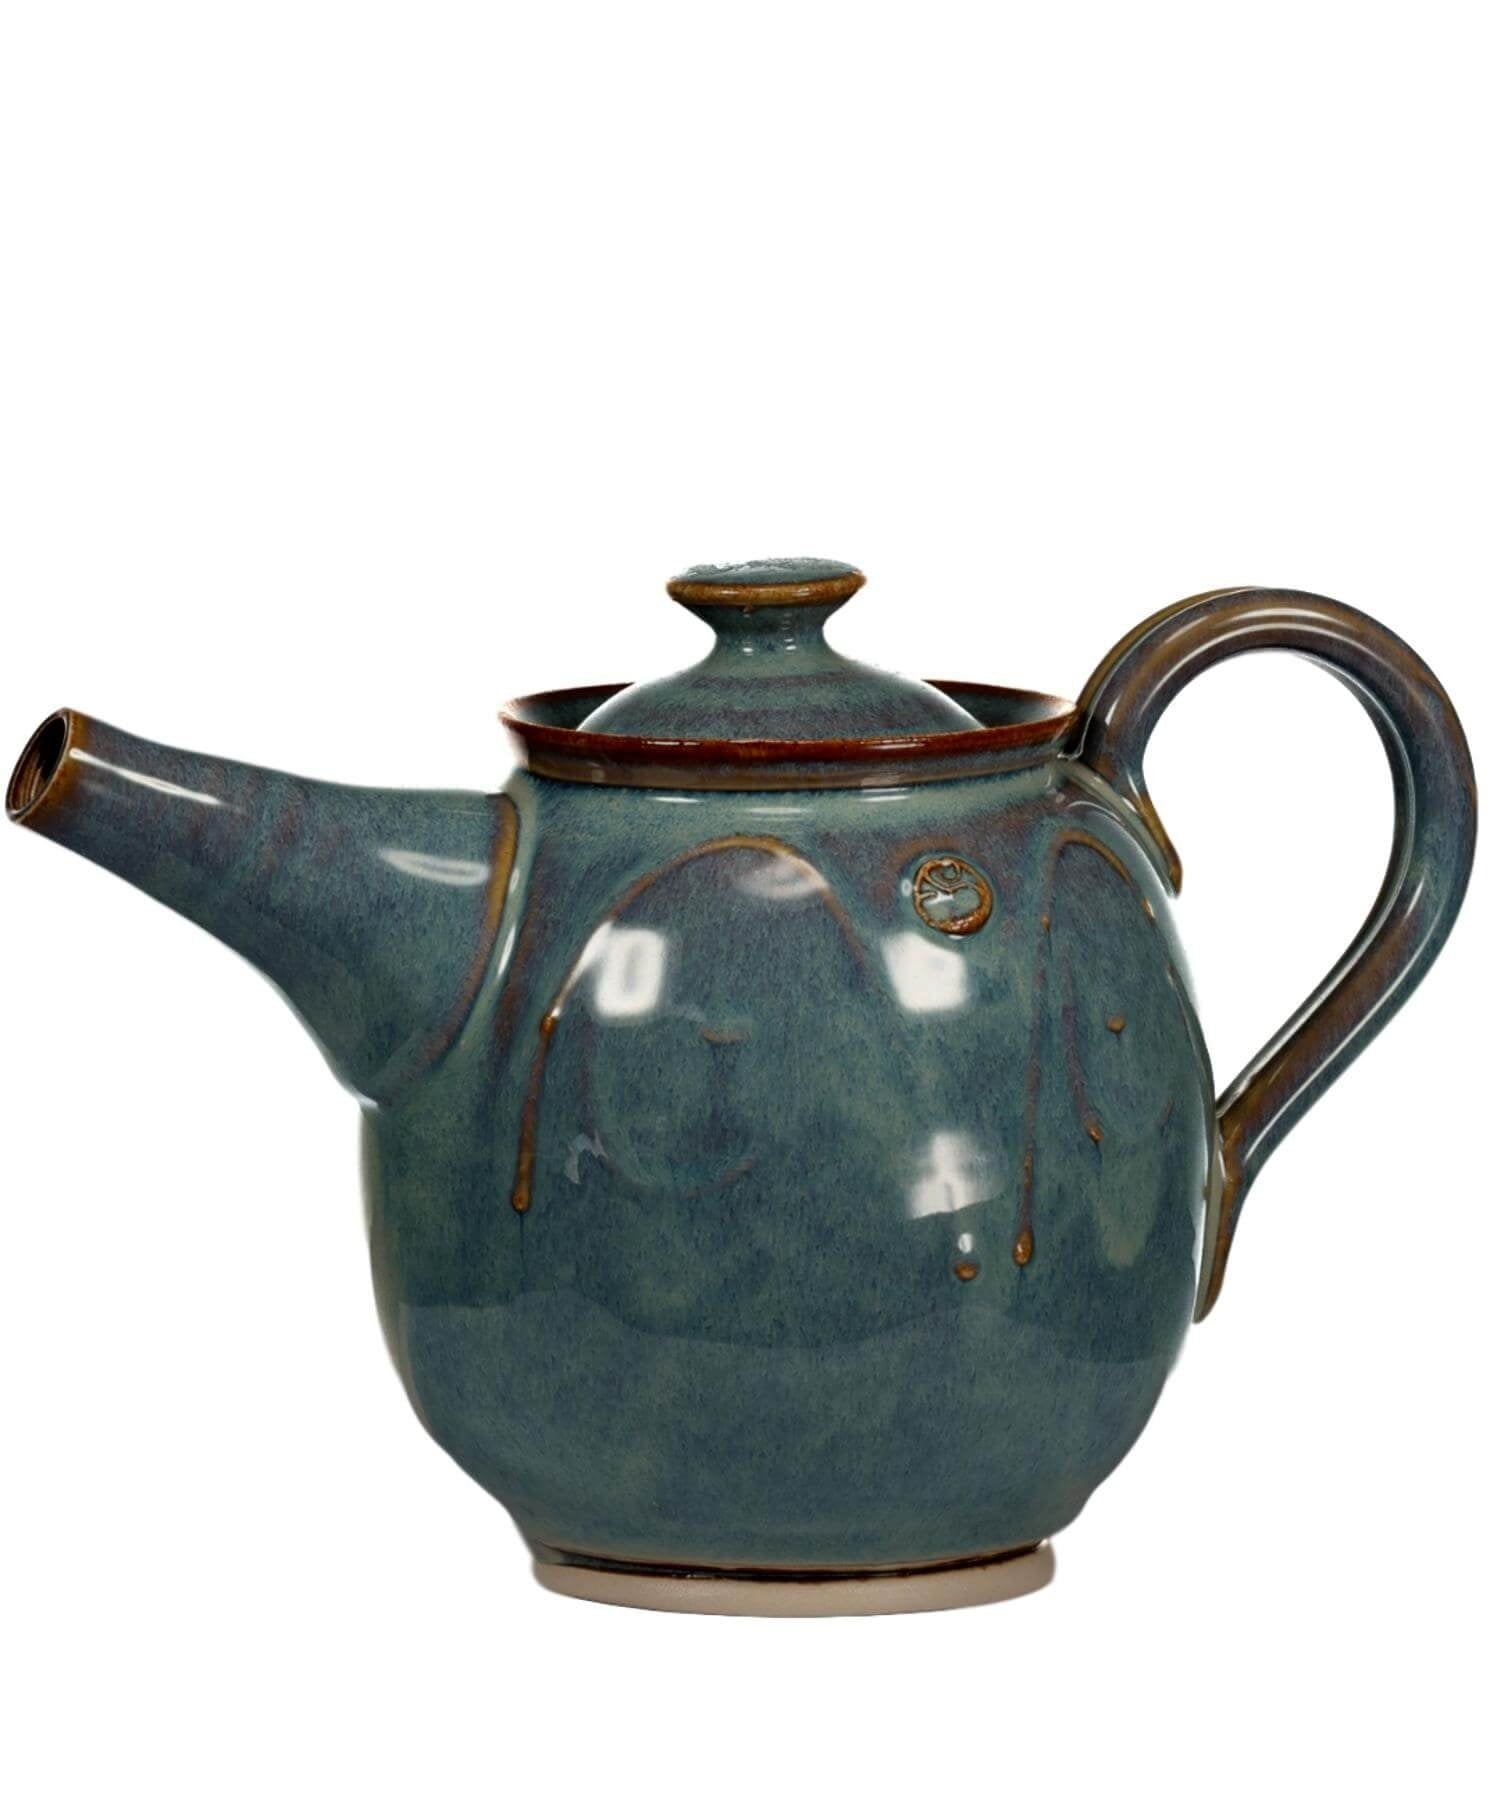 Glas - Teapot - [Castle Arch] - Pottery & Ceramics - Irish Gifts